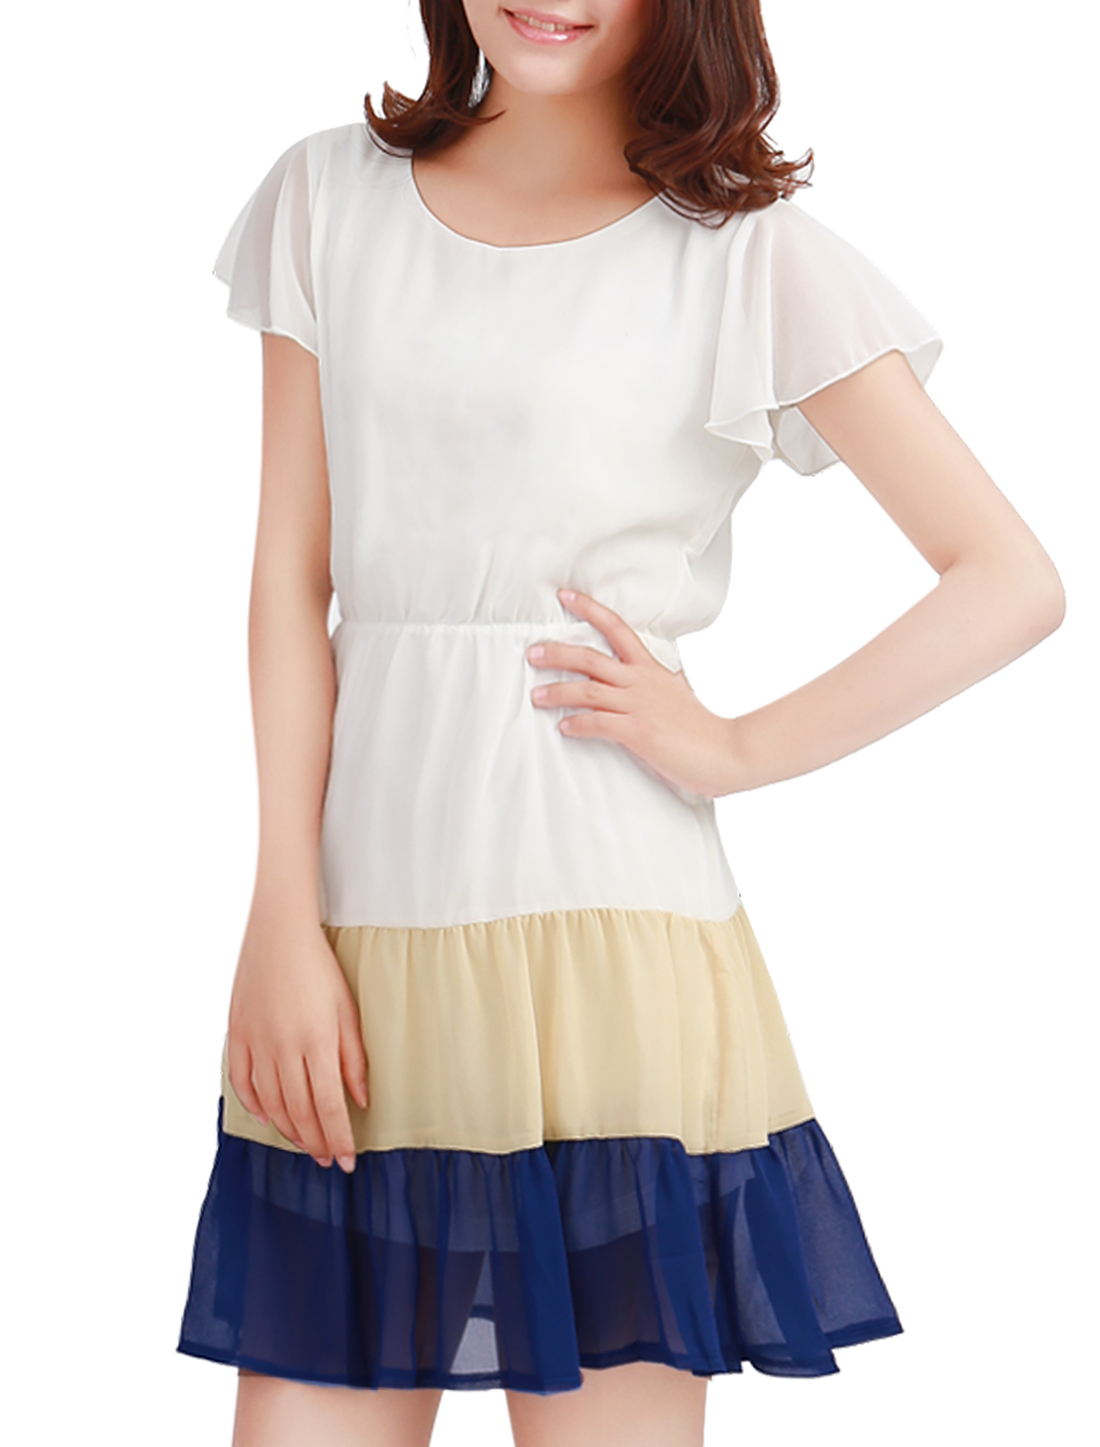 Woman New Fashion Short Flare Sleeve Contrast Color Blue White Mini Dress M